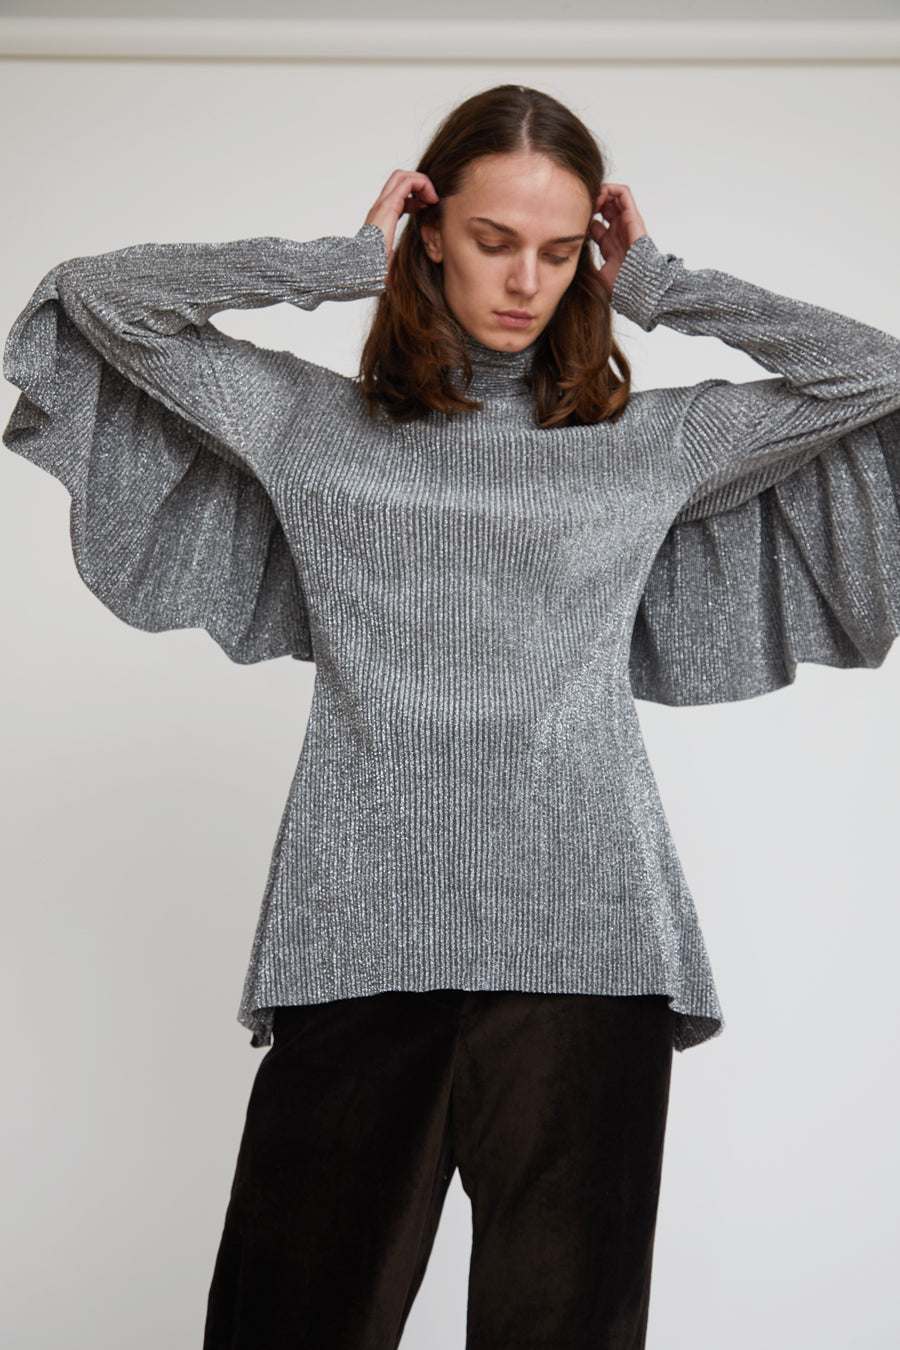 INSHADE Blouse With Frill in Silver